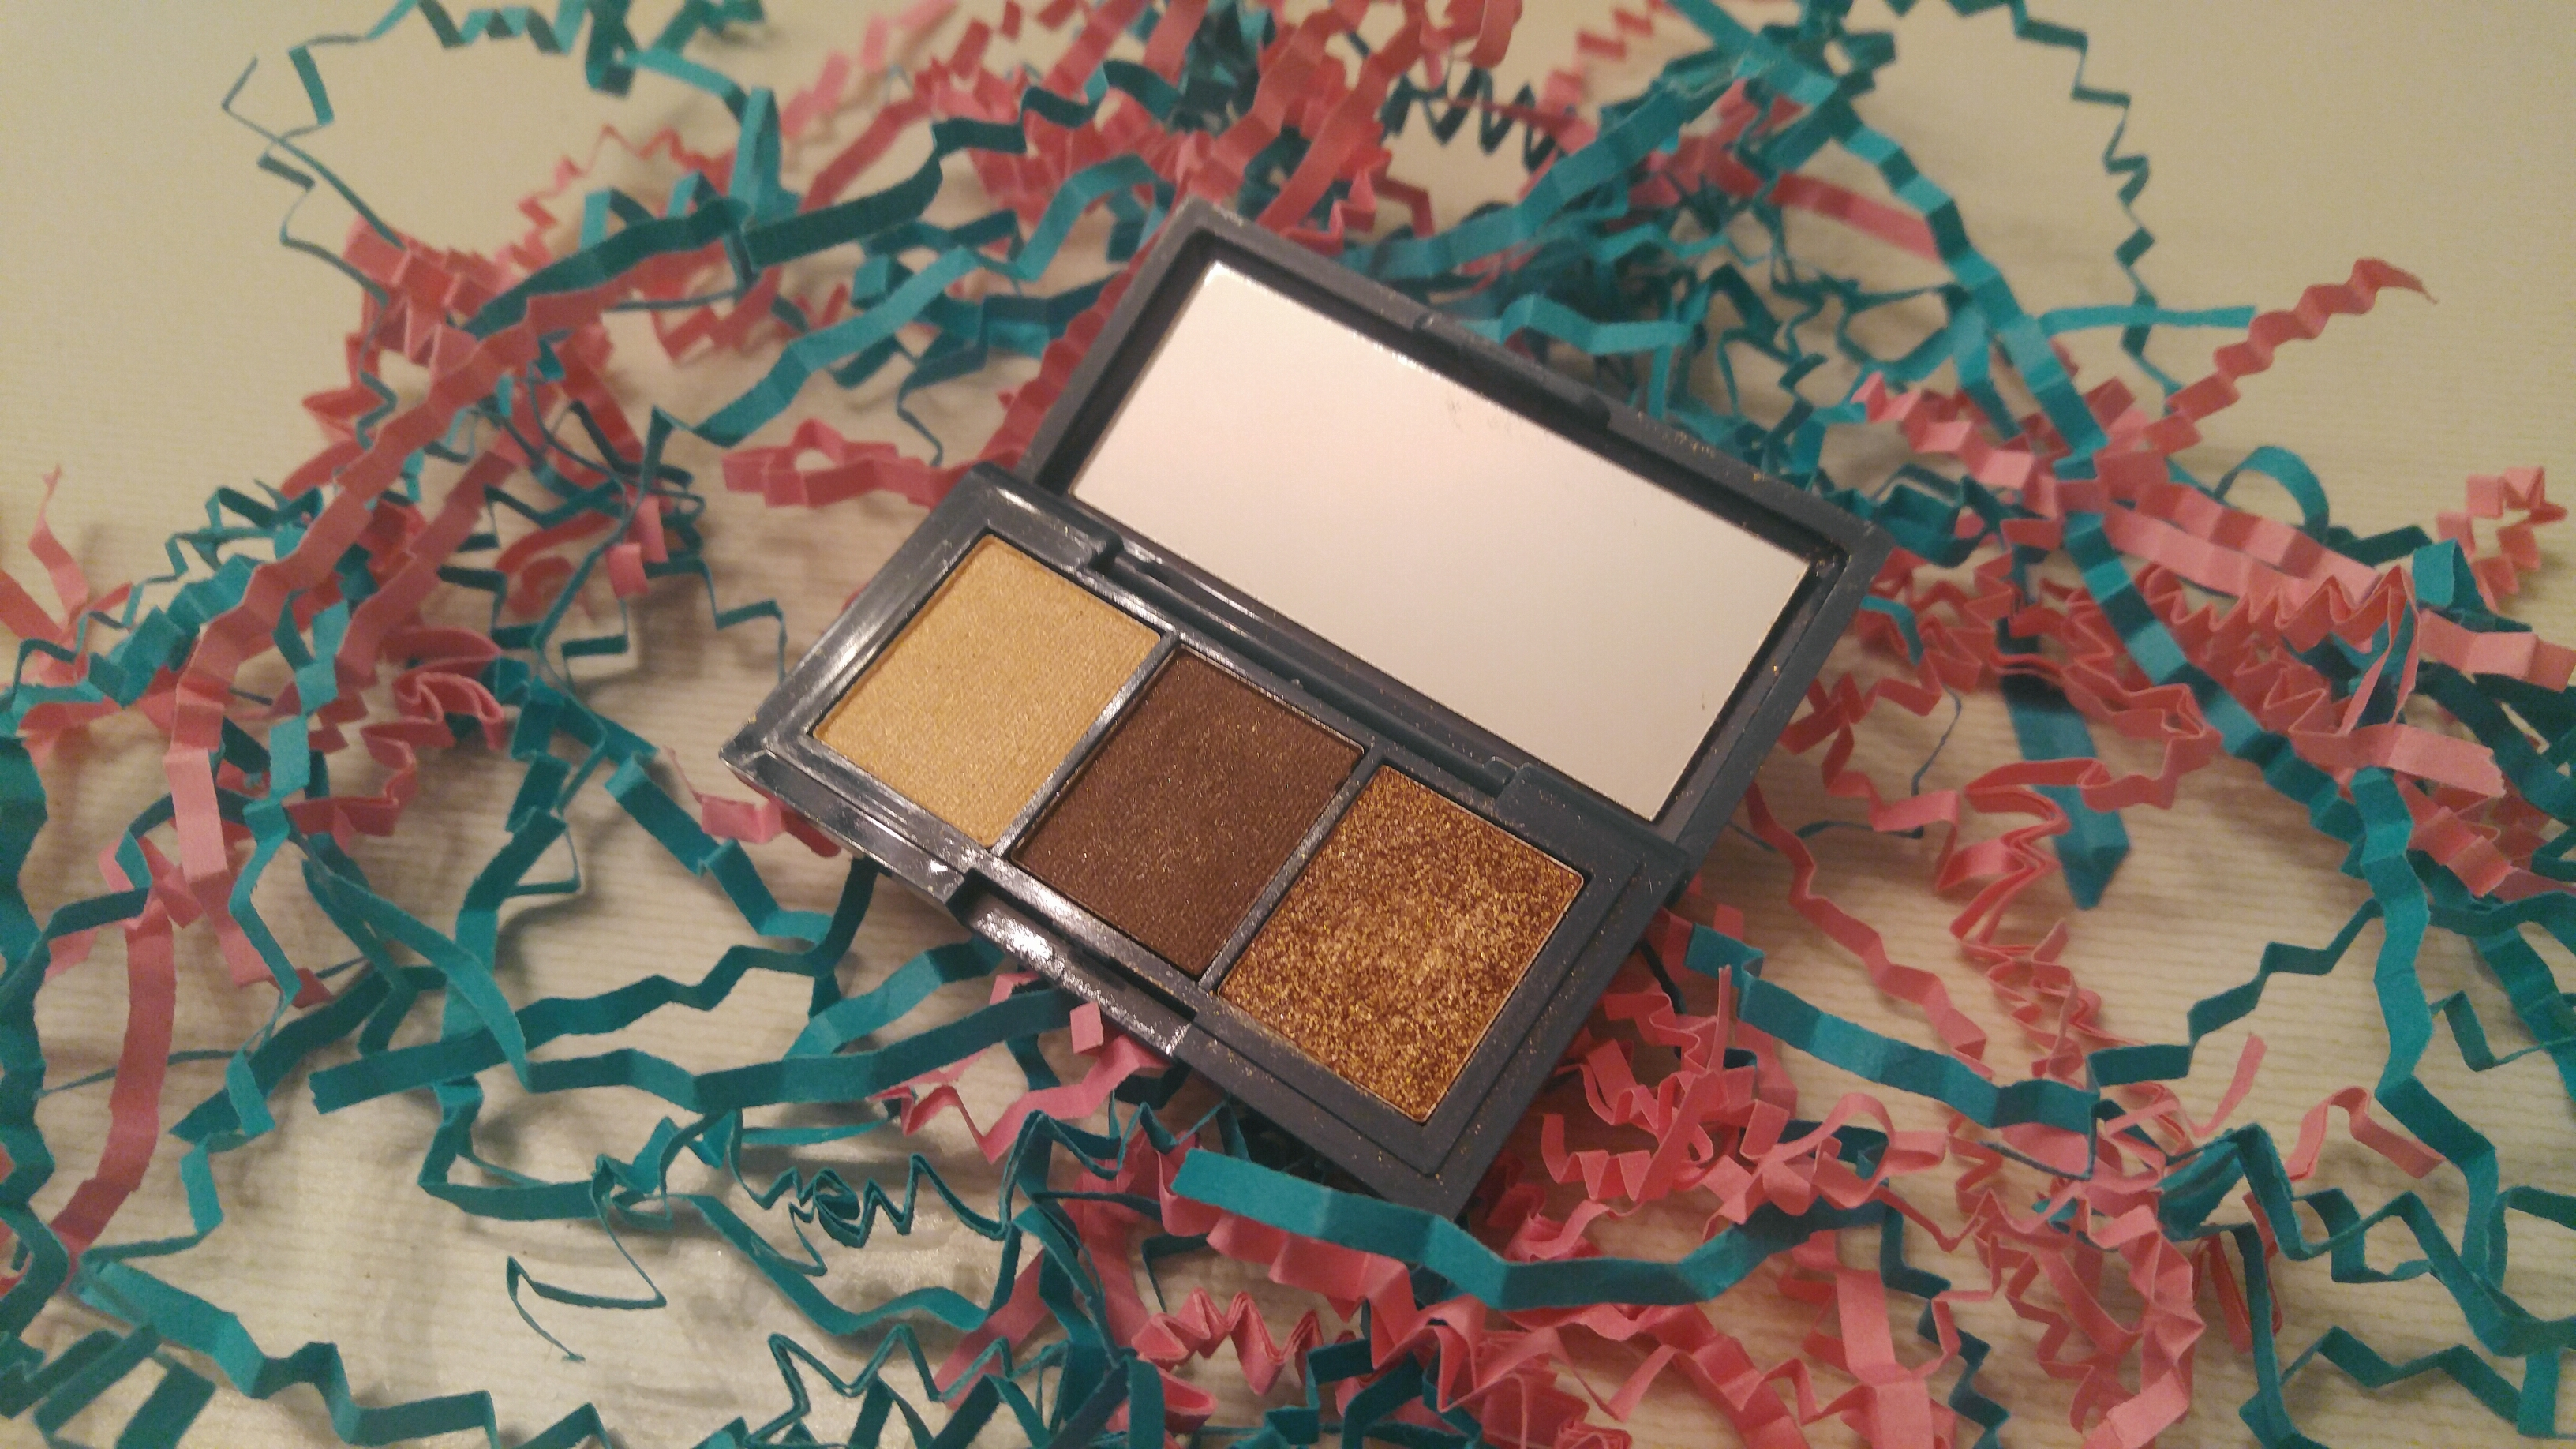 Beauty Box 5: Peony Cosmetics Eyeshadow Trio